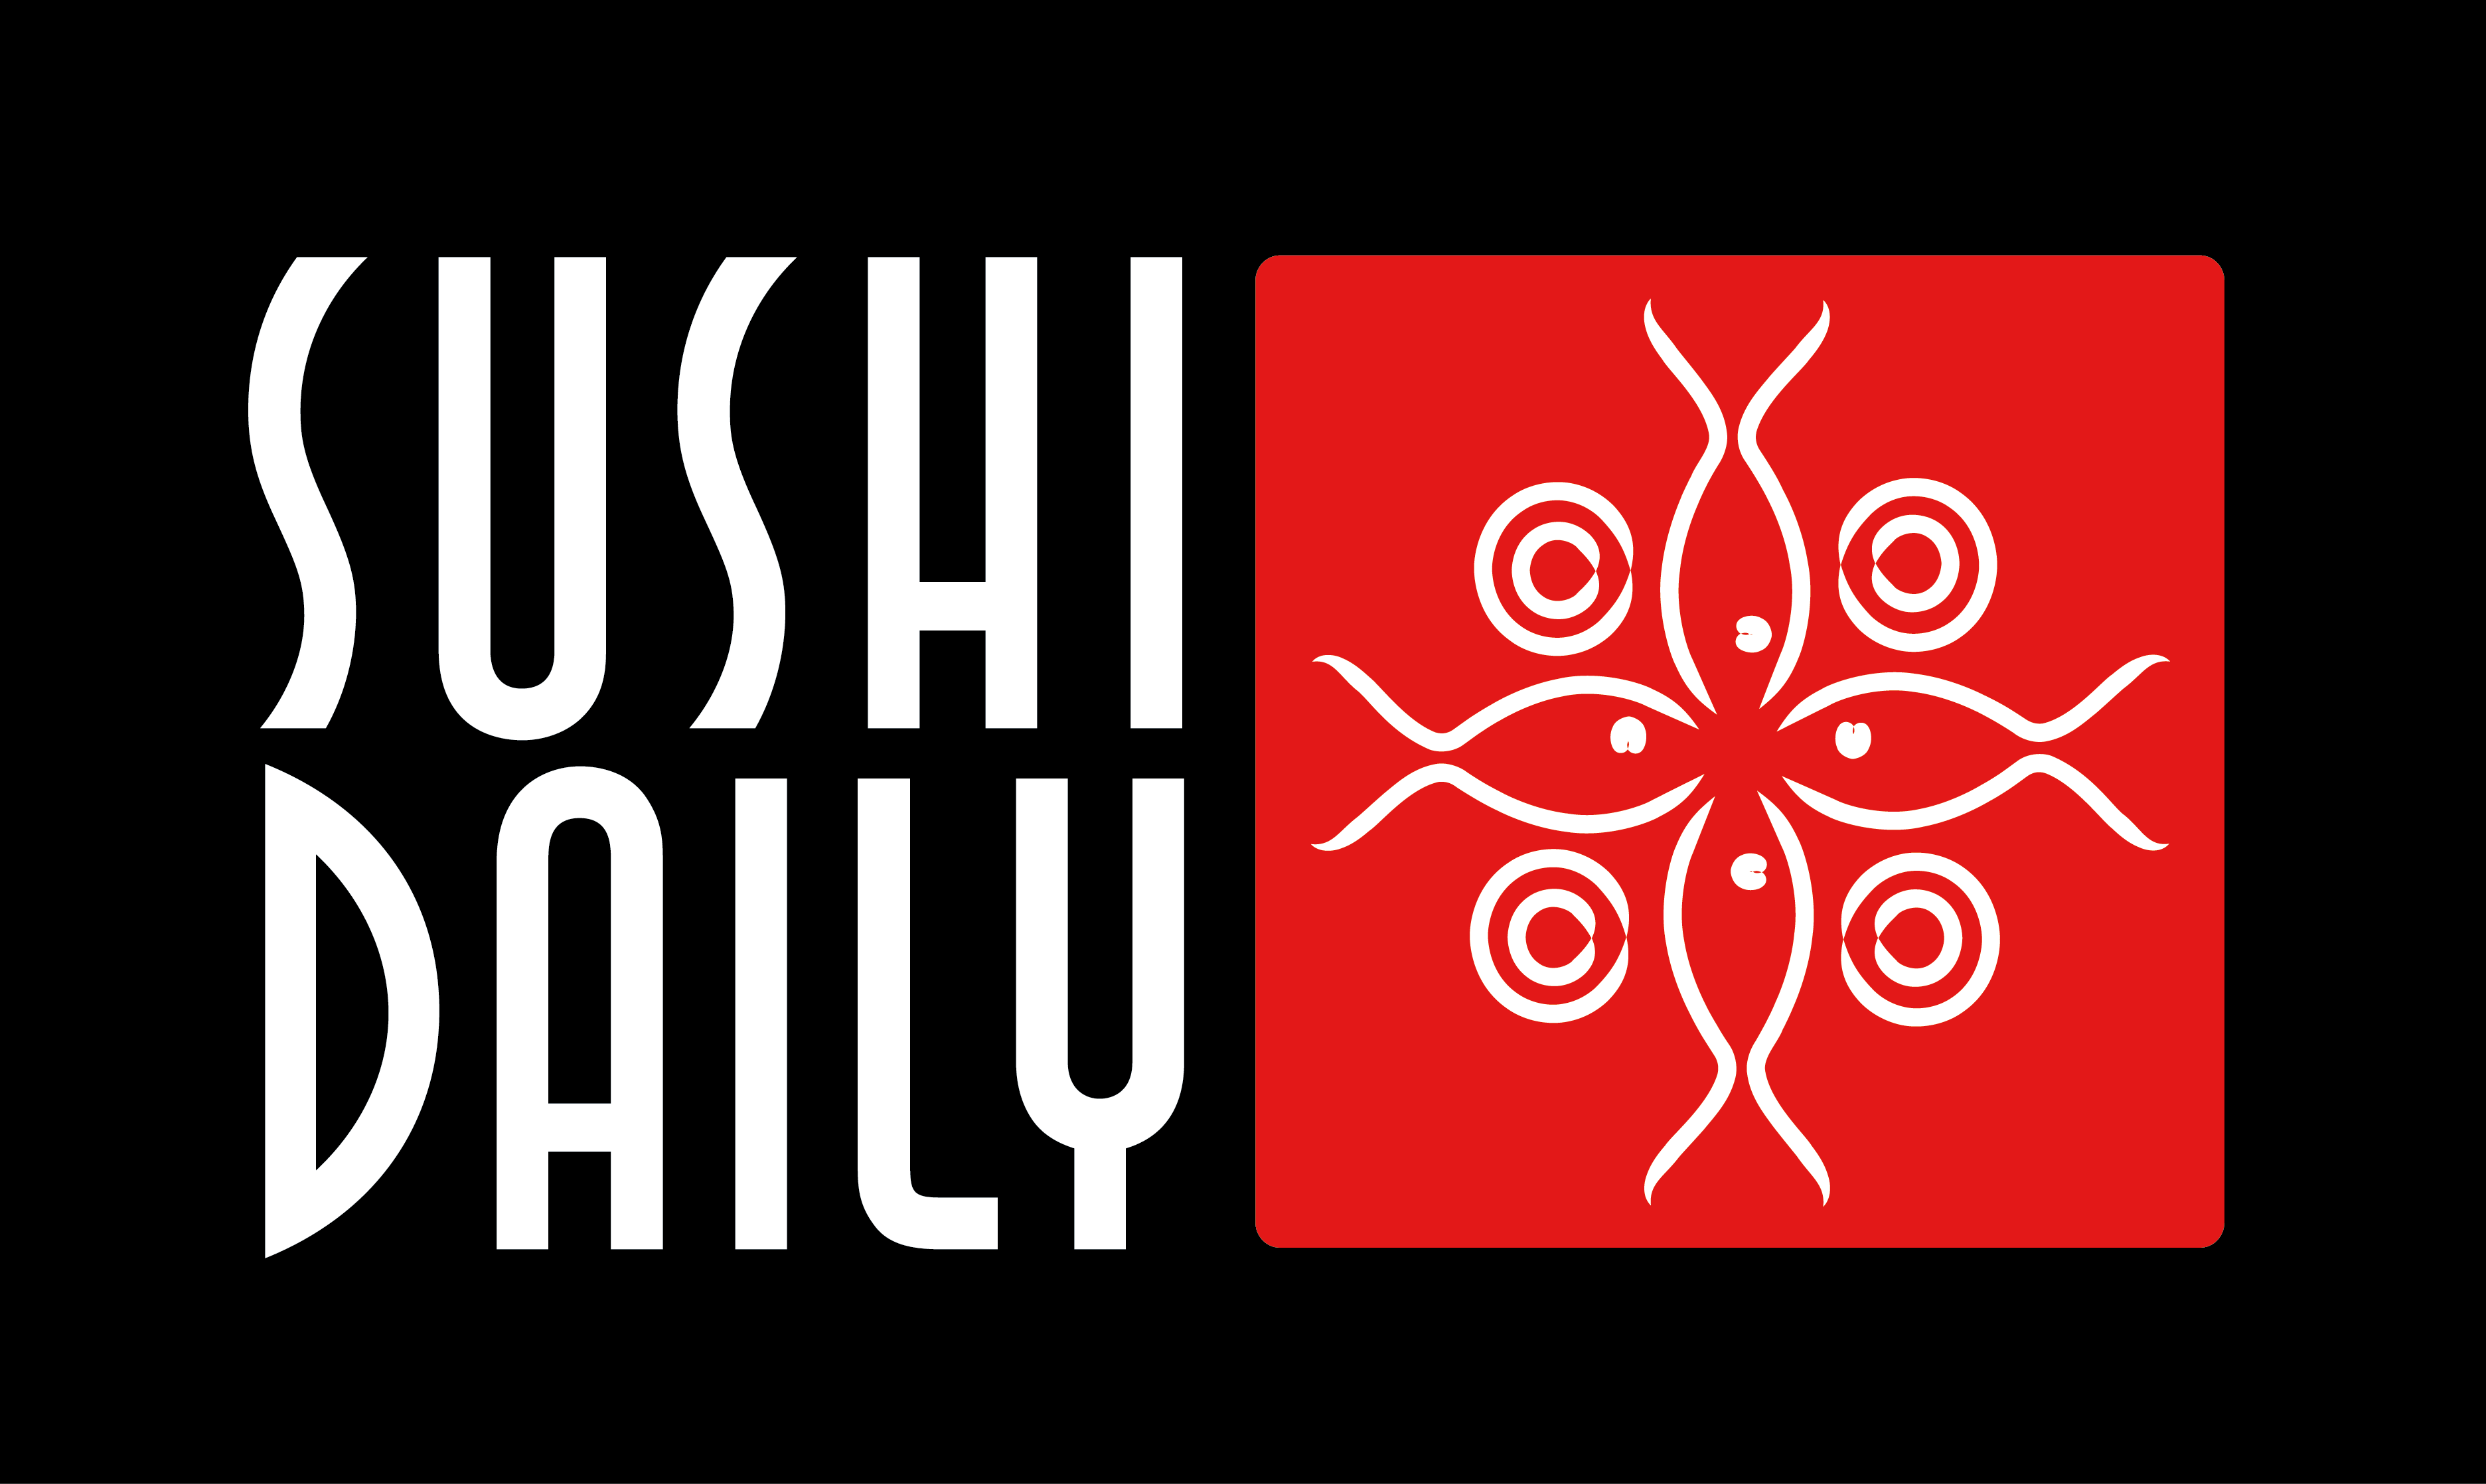 logo sushi daily client ideria